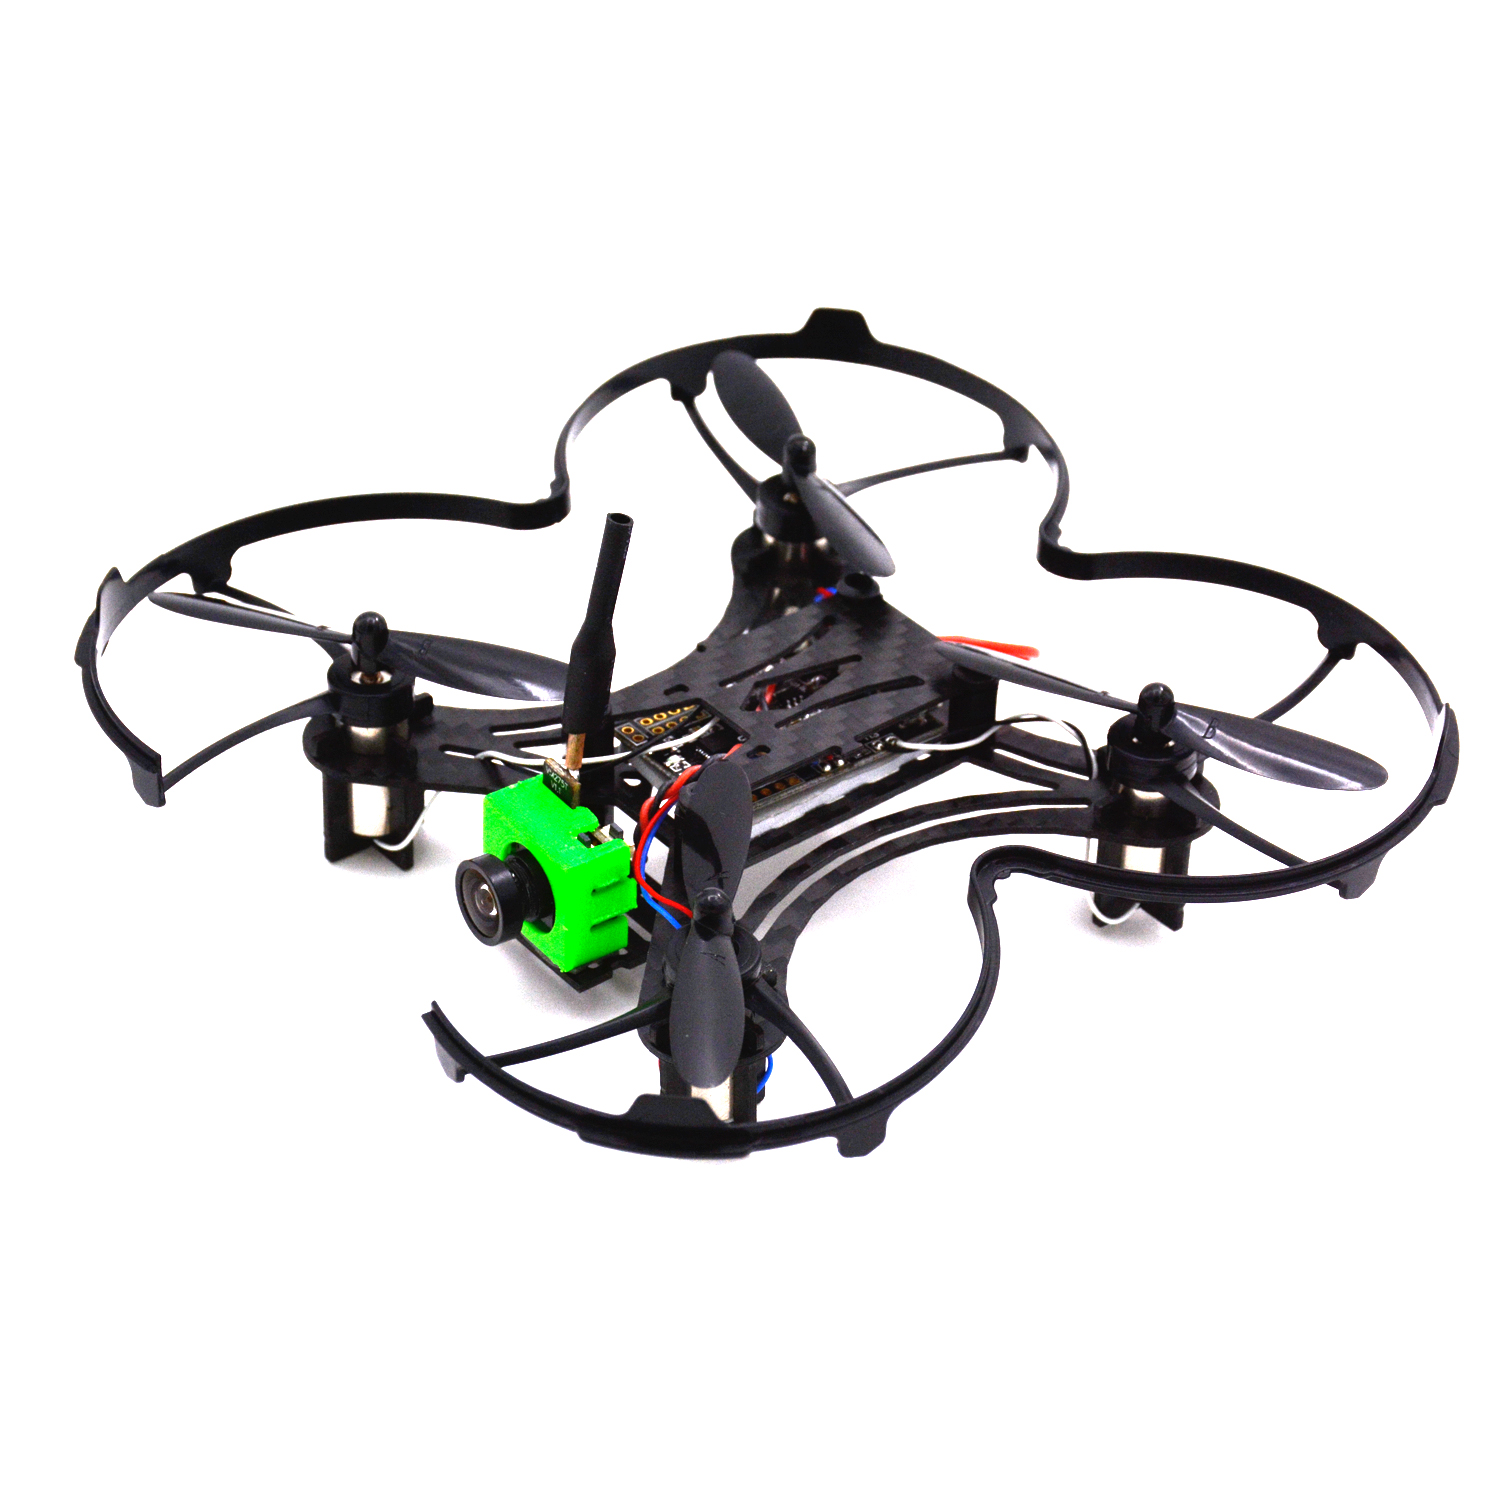 90mm Frame Kit &F3 Flight Controller Board 8520 motor&600TVL Camera RC plane 90mm Micro FPV Racing Quadcopter Spare Parts mimi rc plane 90mm micro fpv racing